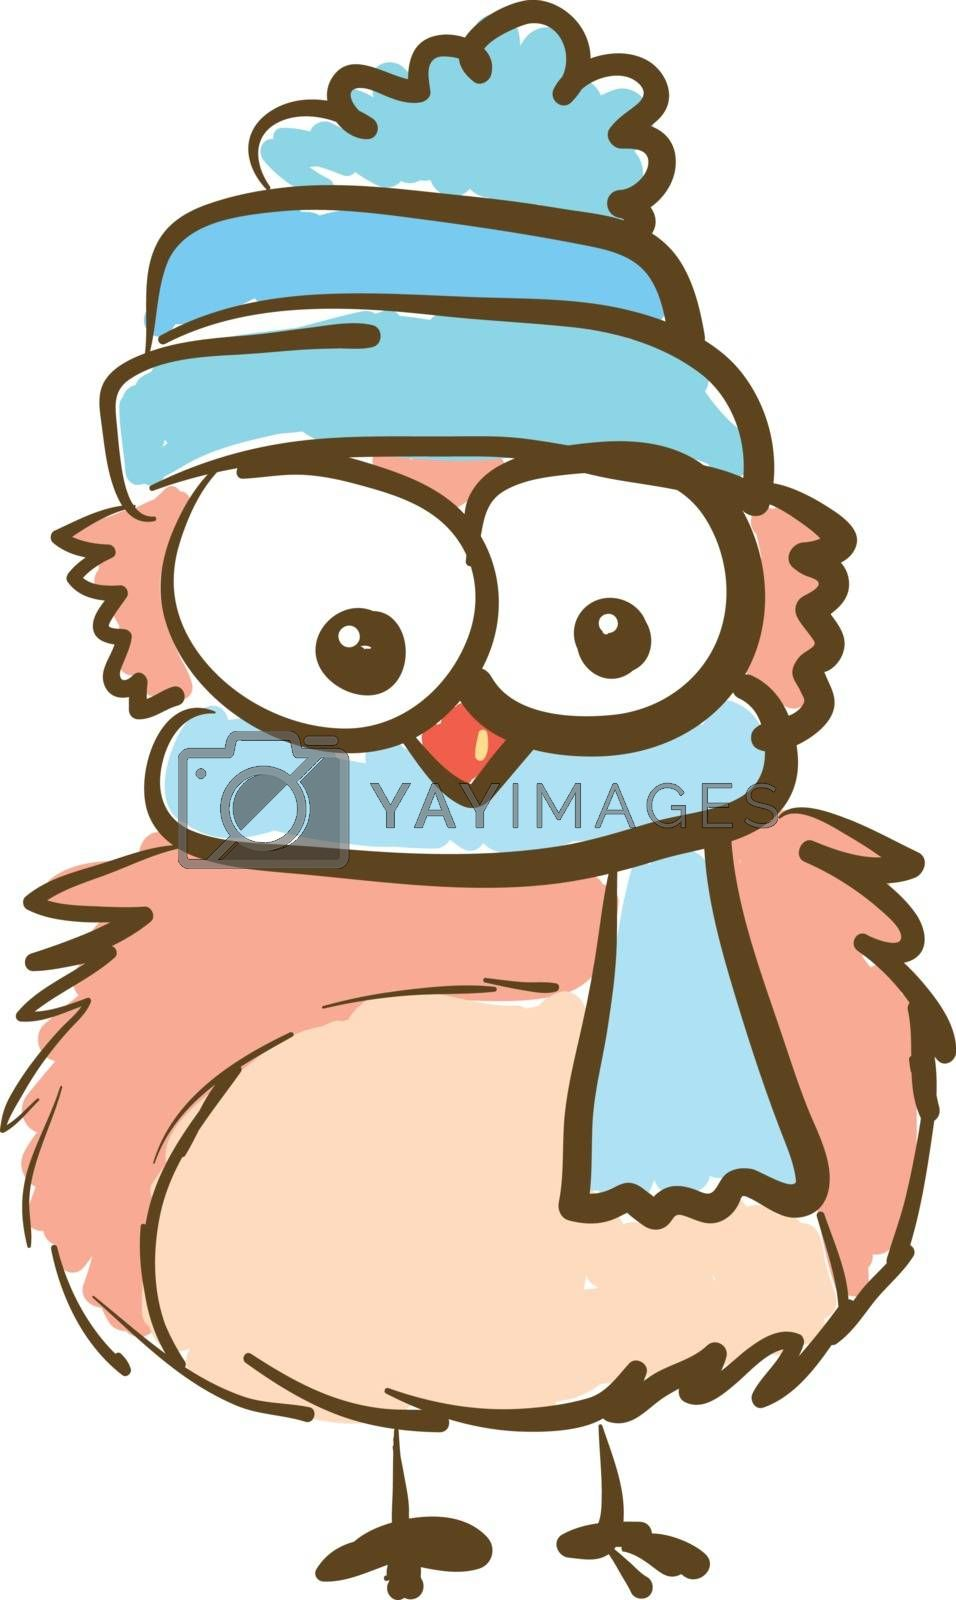 A cartoon of an owl with huge eyes wearing a blue cap and a scarf vector color drawing or illustration